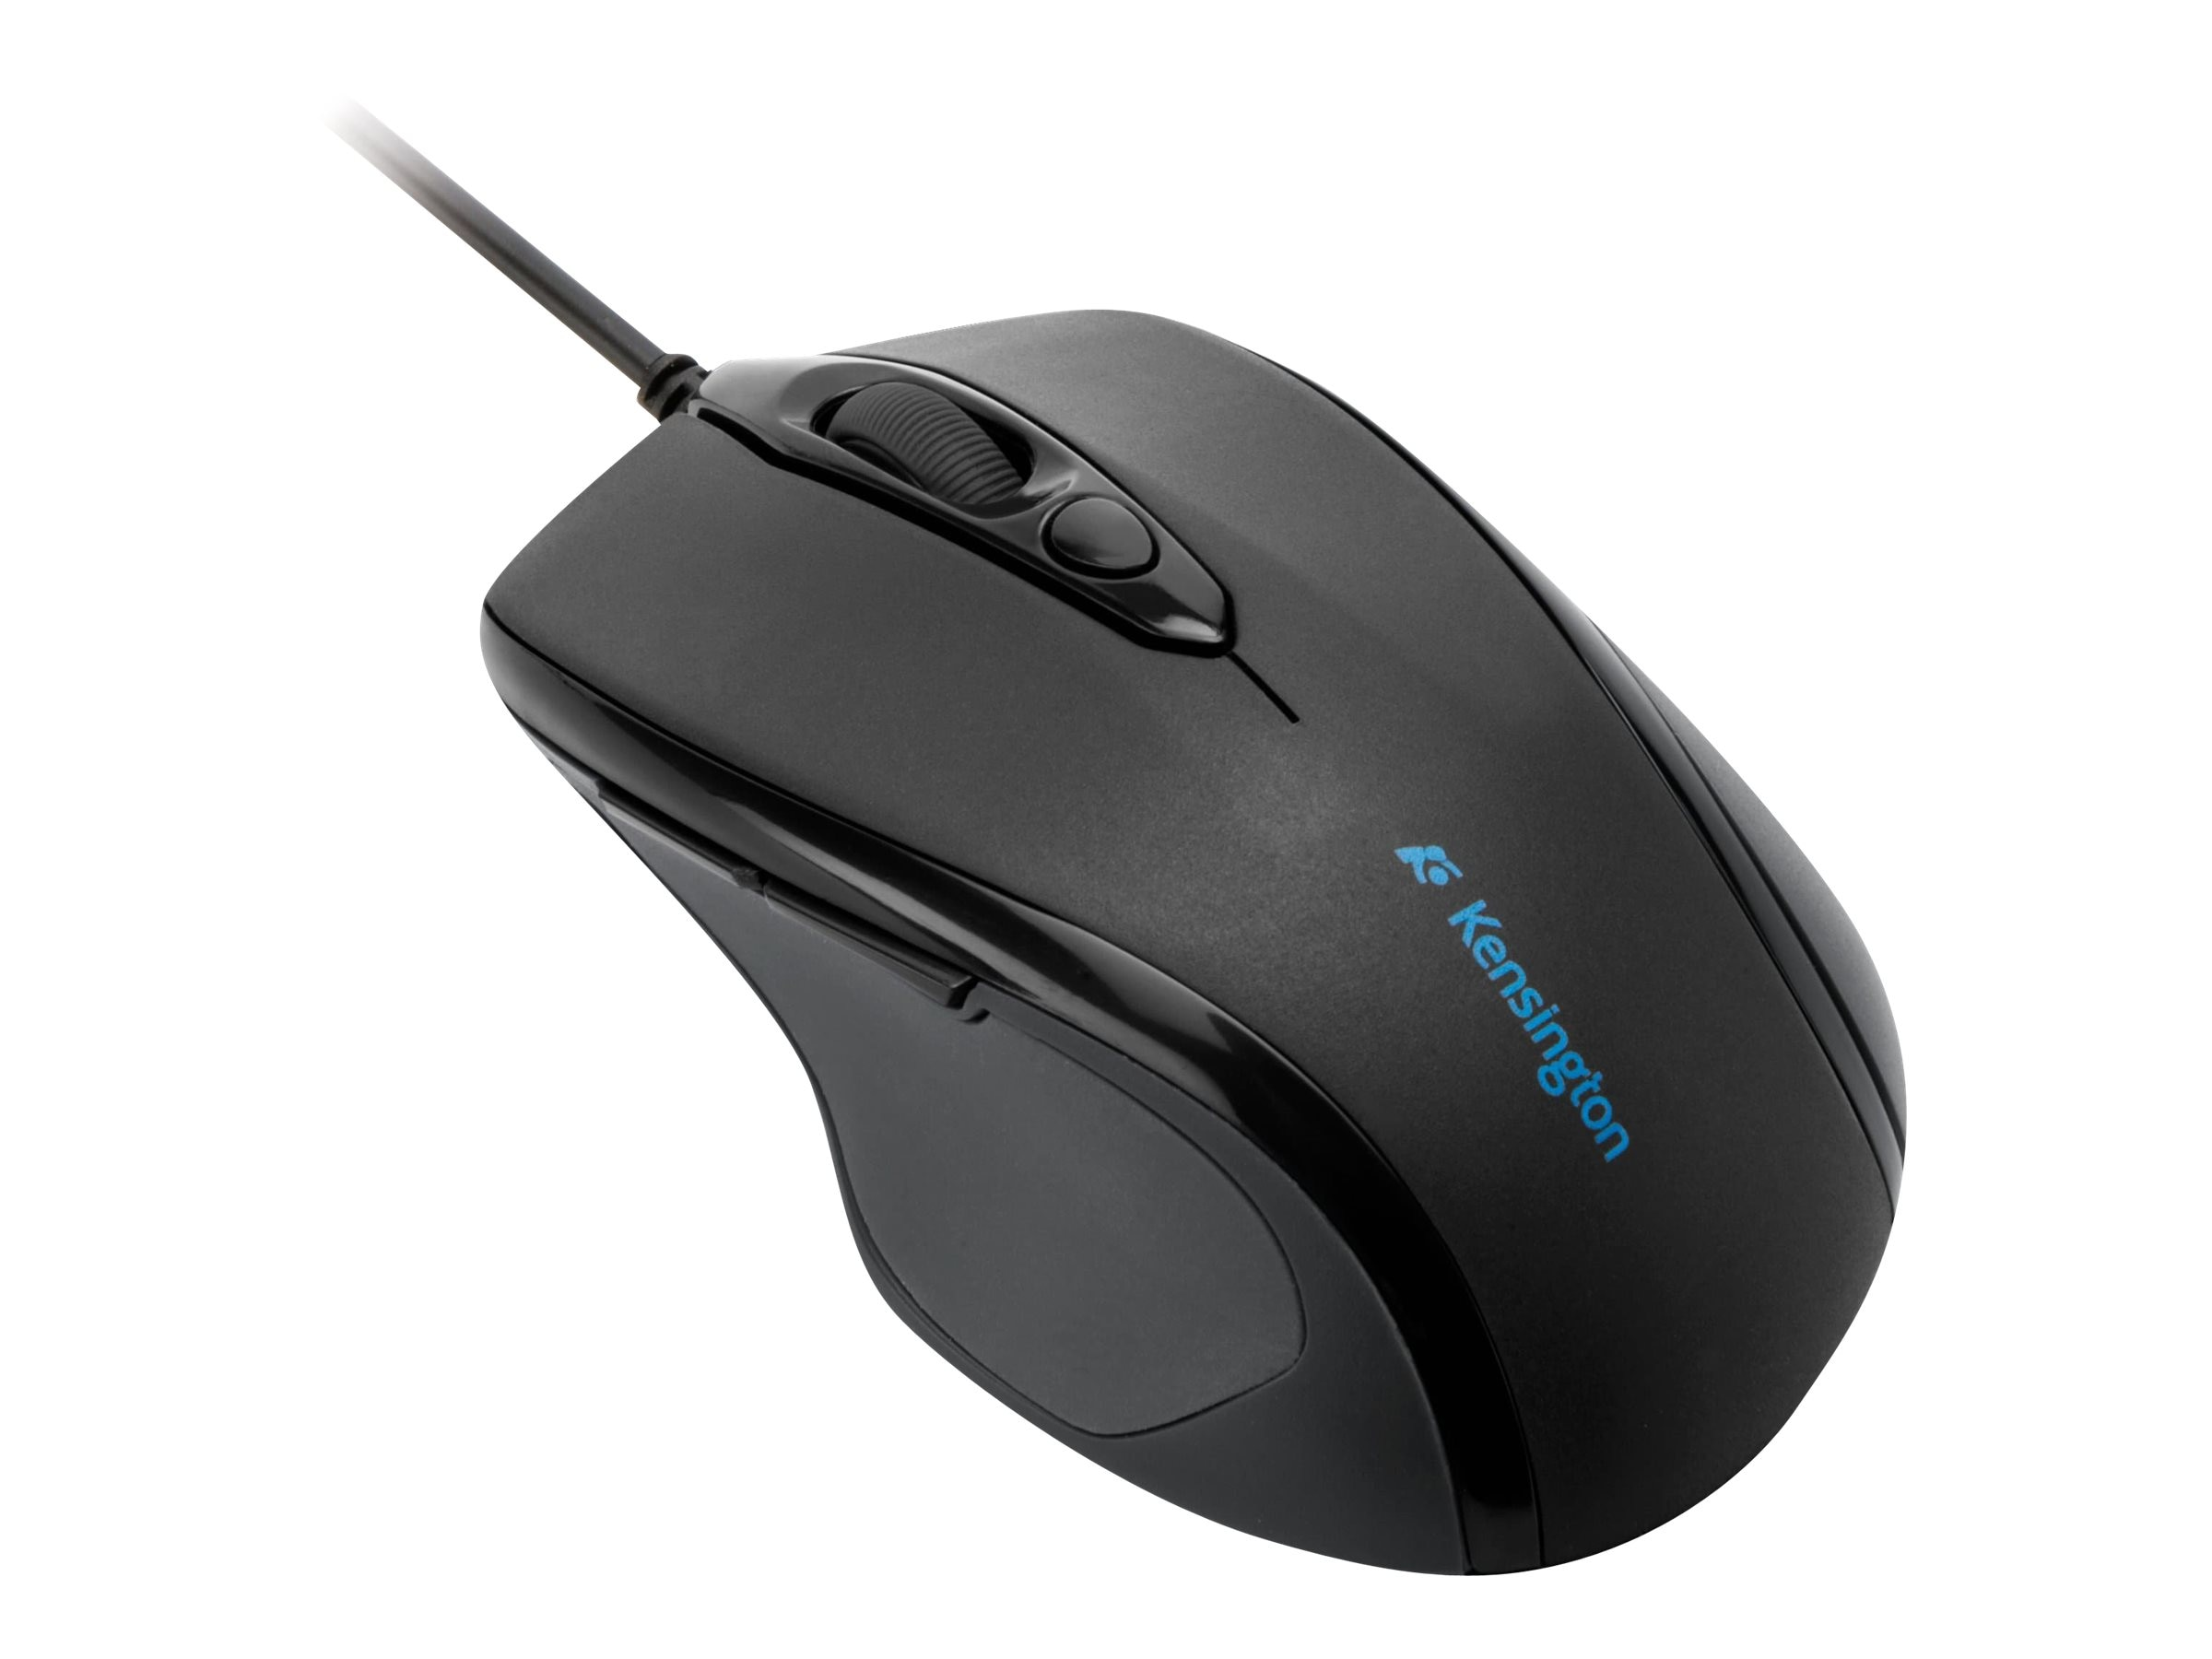 Kensington Pro Fit Mid-Size Mouse, K72355US